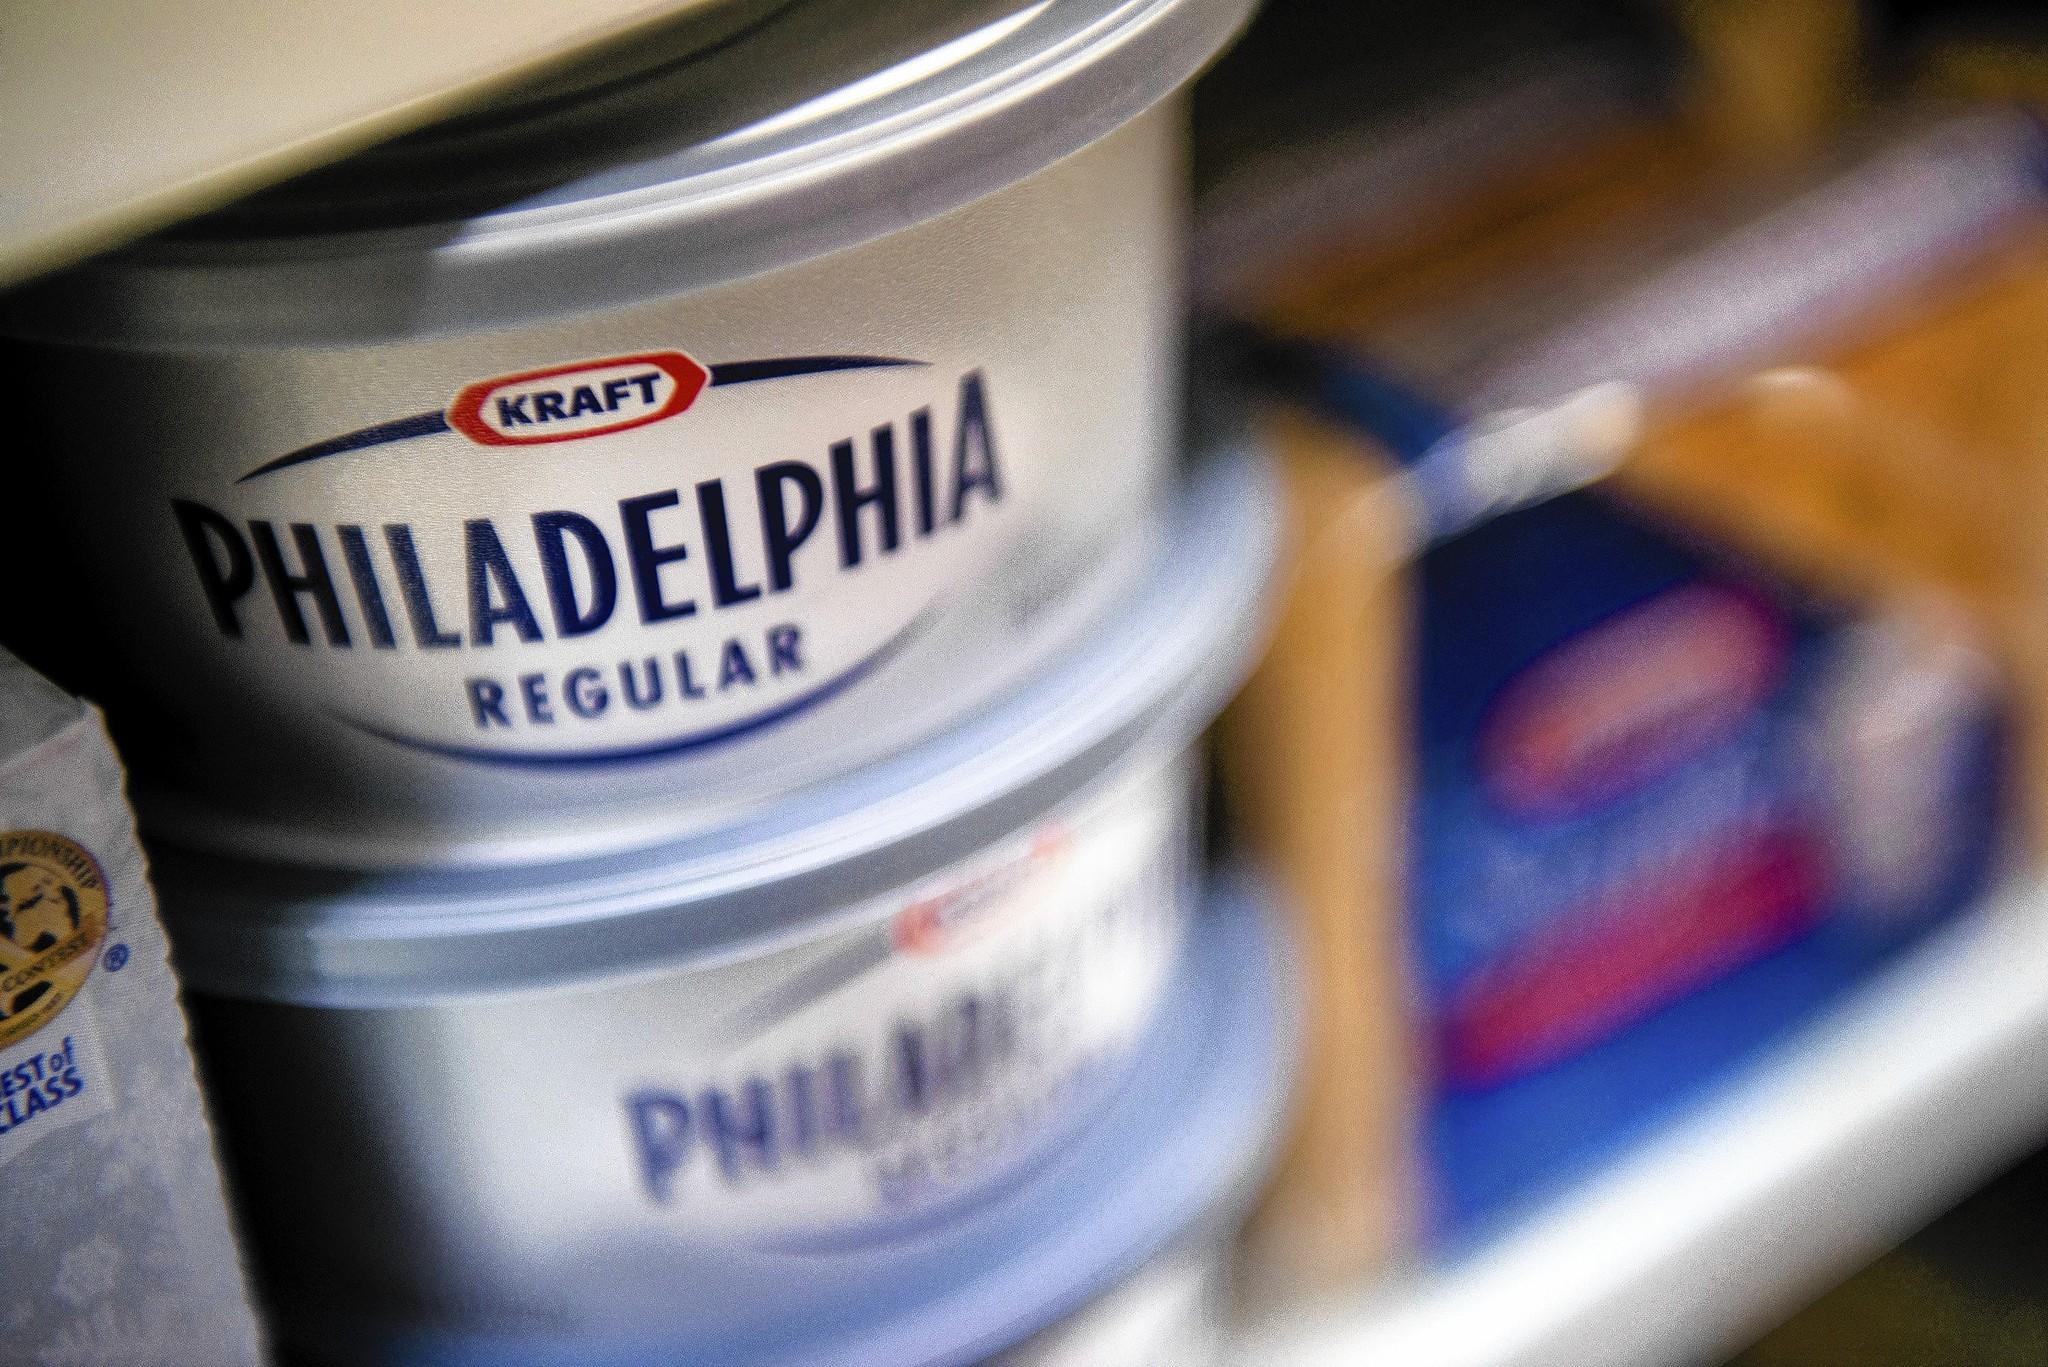 Kraft Foods Group, maker of Philadelphia cream cheese, reported that fourth-quarter revenue came in below Wall Street expectations, in part because of lower prices for nuts and coffee. The company does not give specific targets for growth this year.